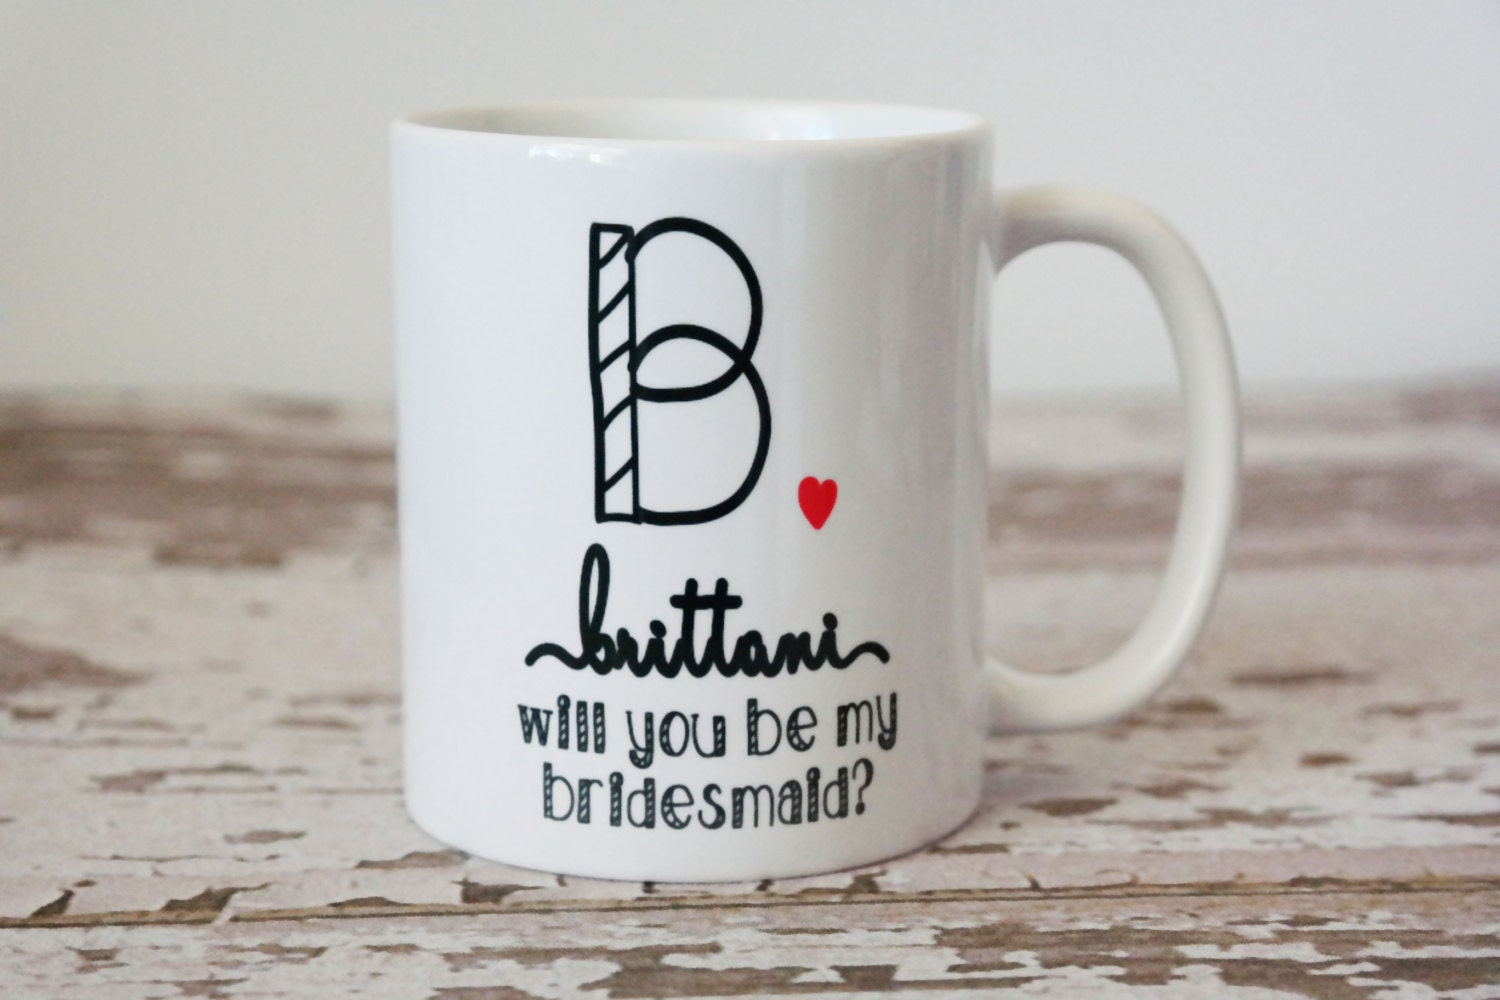 Wedding Gift Mugs Suggestions : Bridesmaid Gift Bridal Party Gifts Coffee Mug